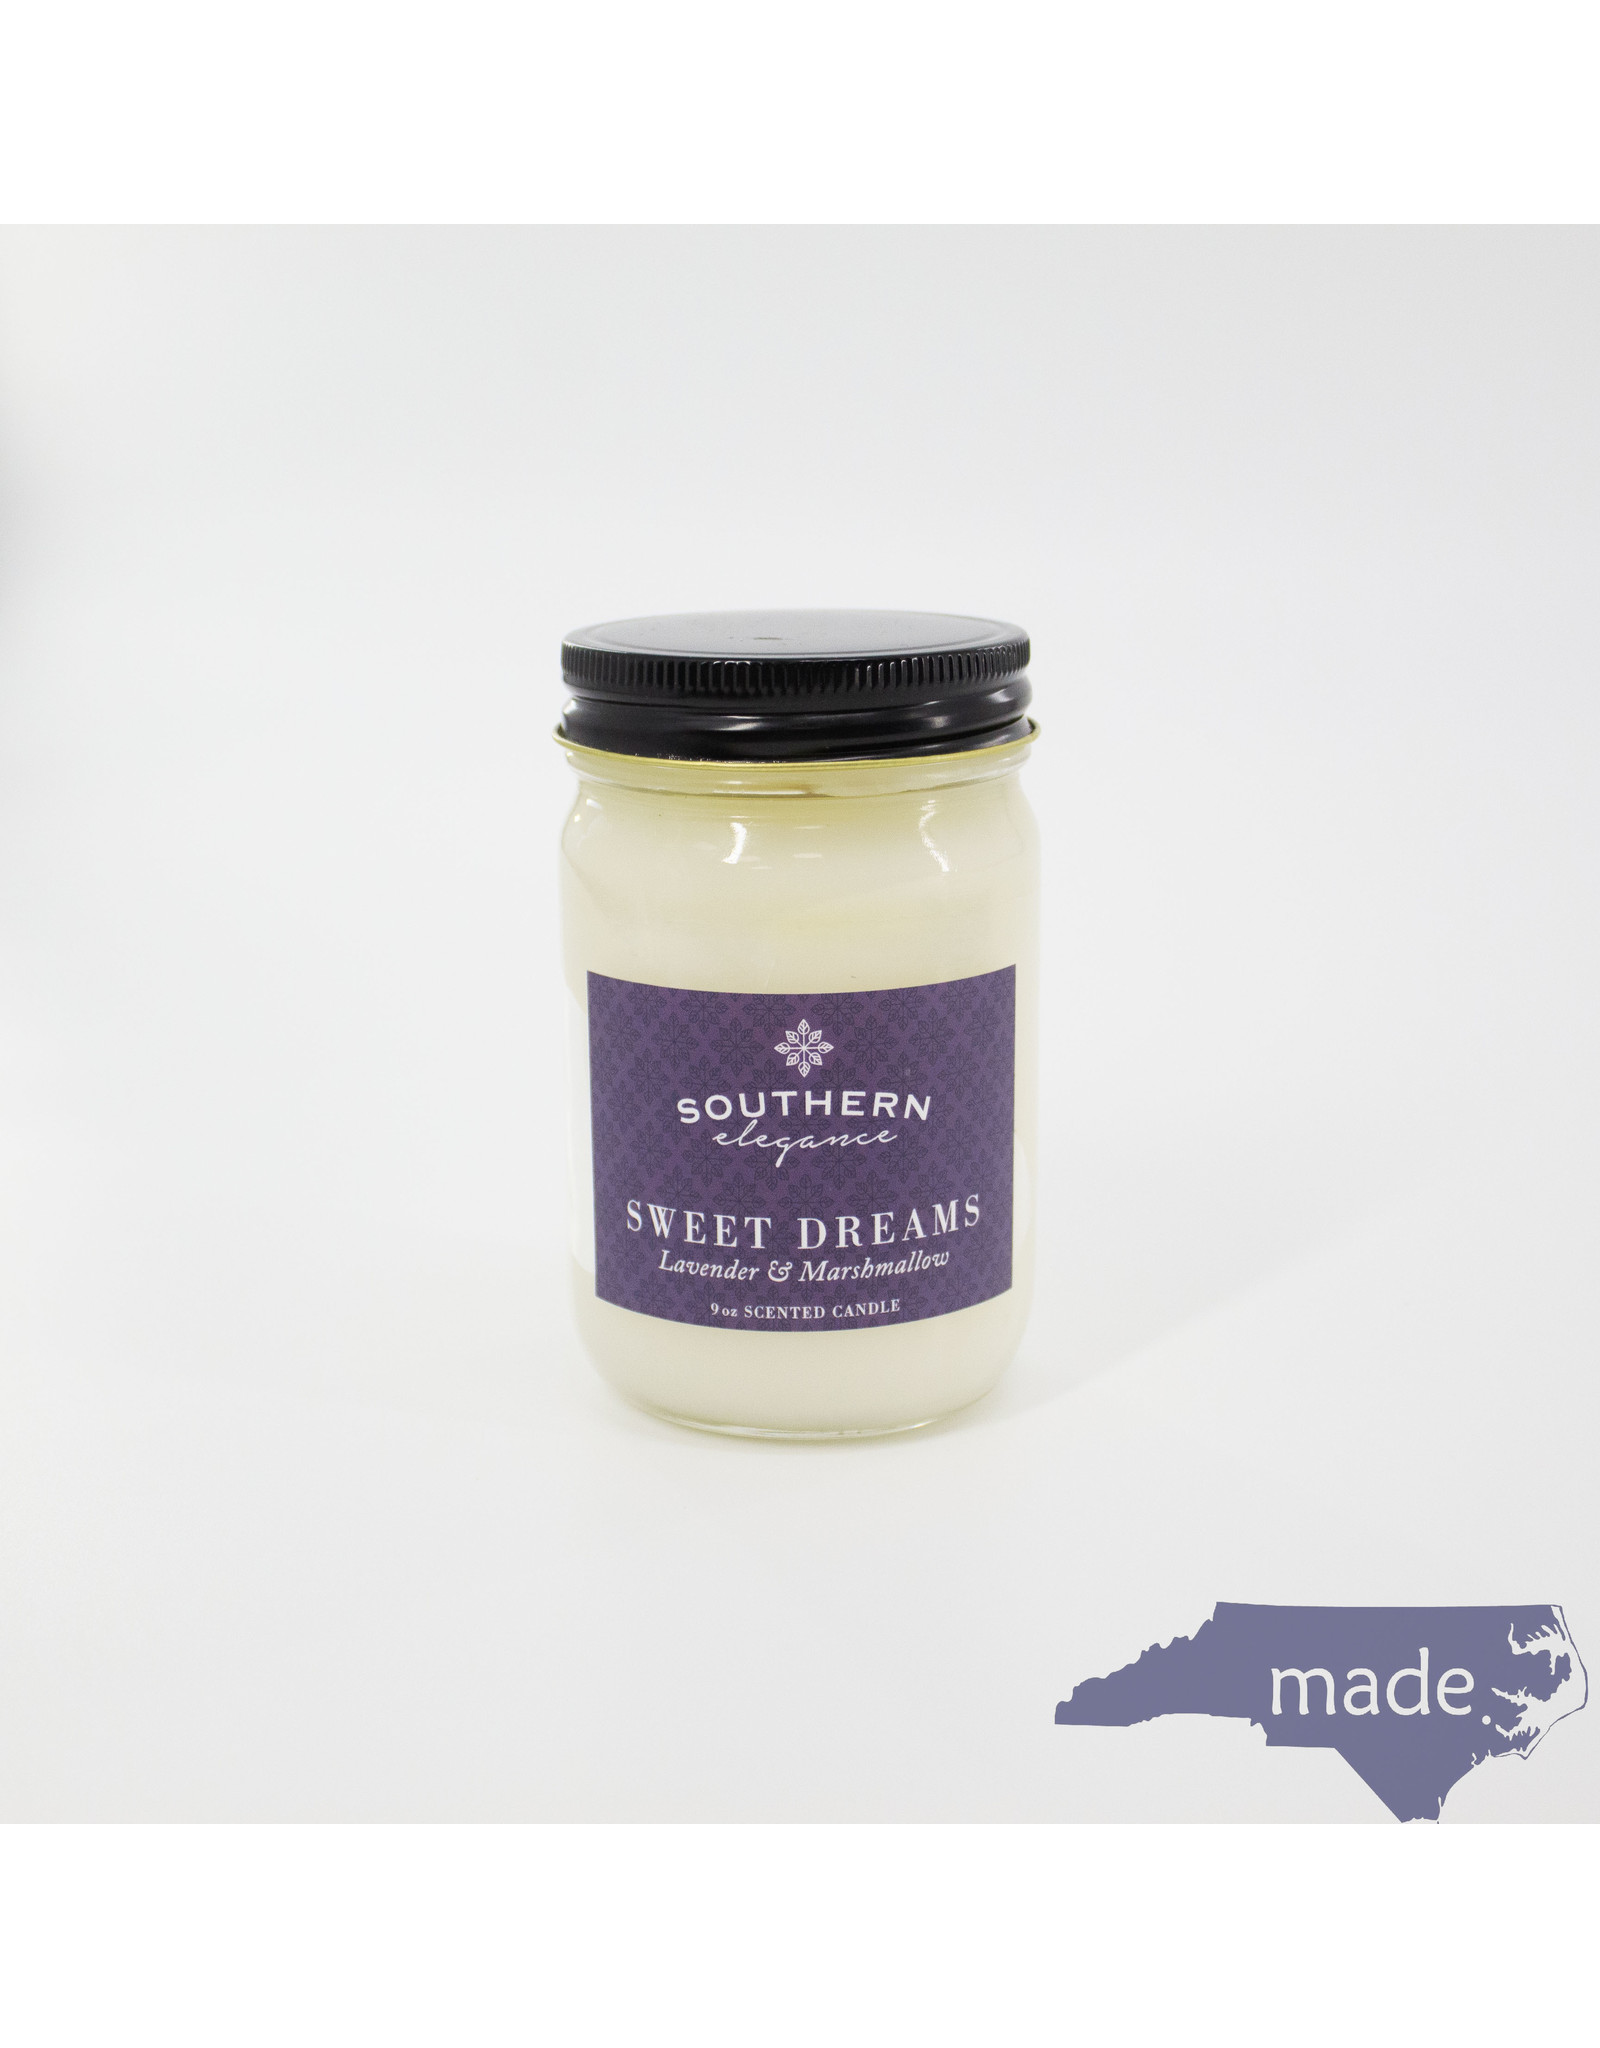 Southern Elegance Candle Co. Sweet Dreams - Southern Elegance Candle Co.